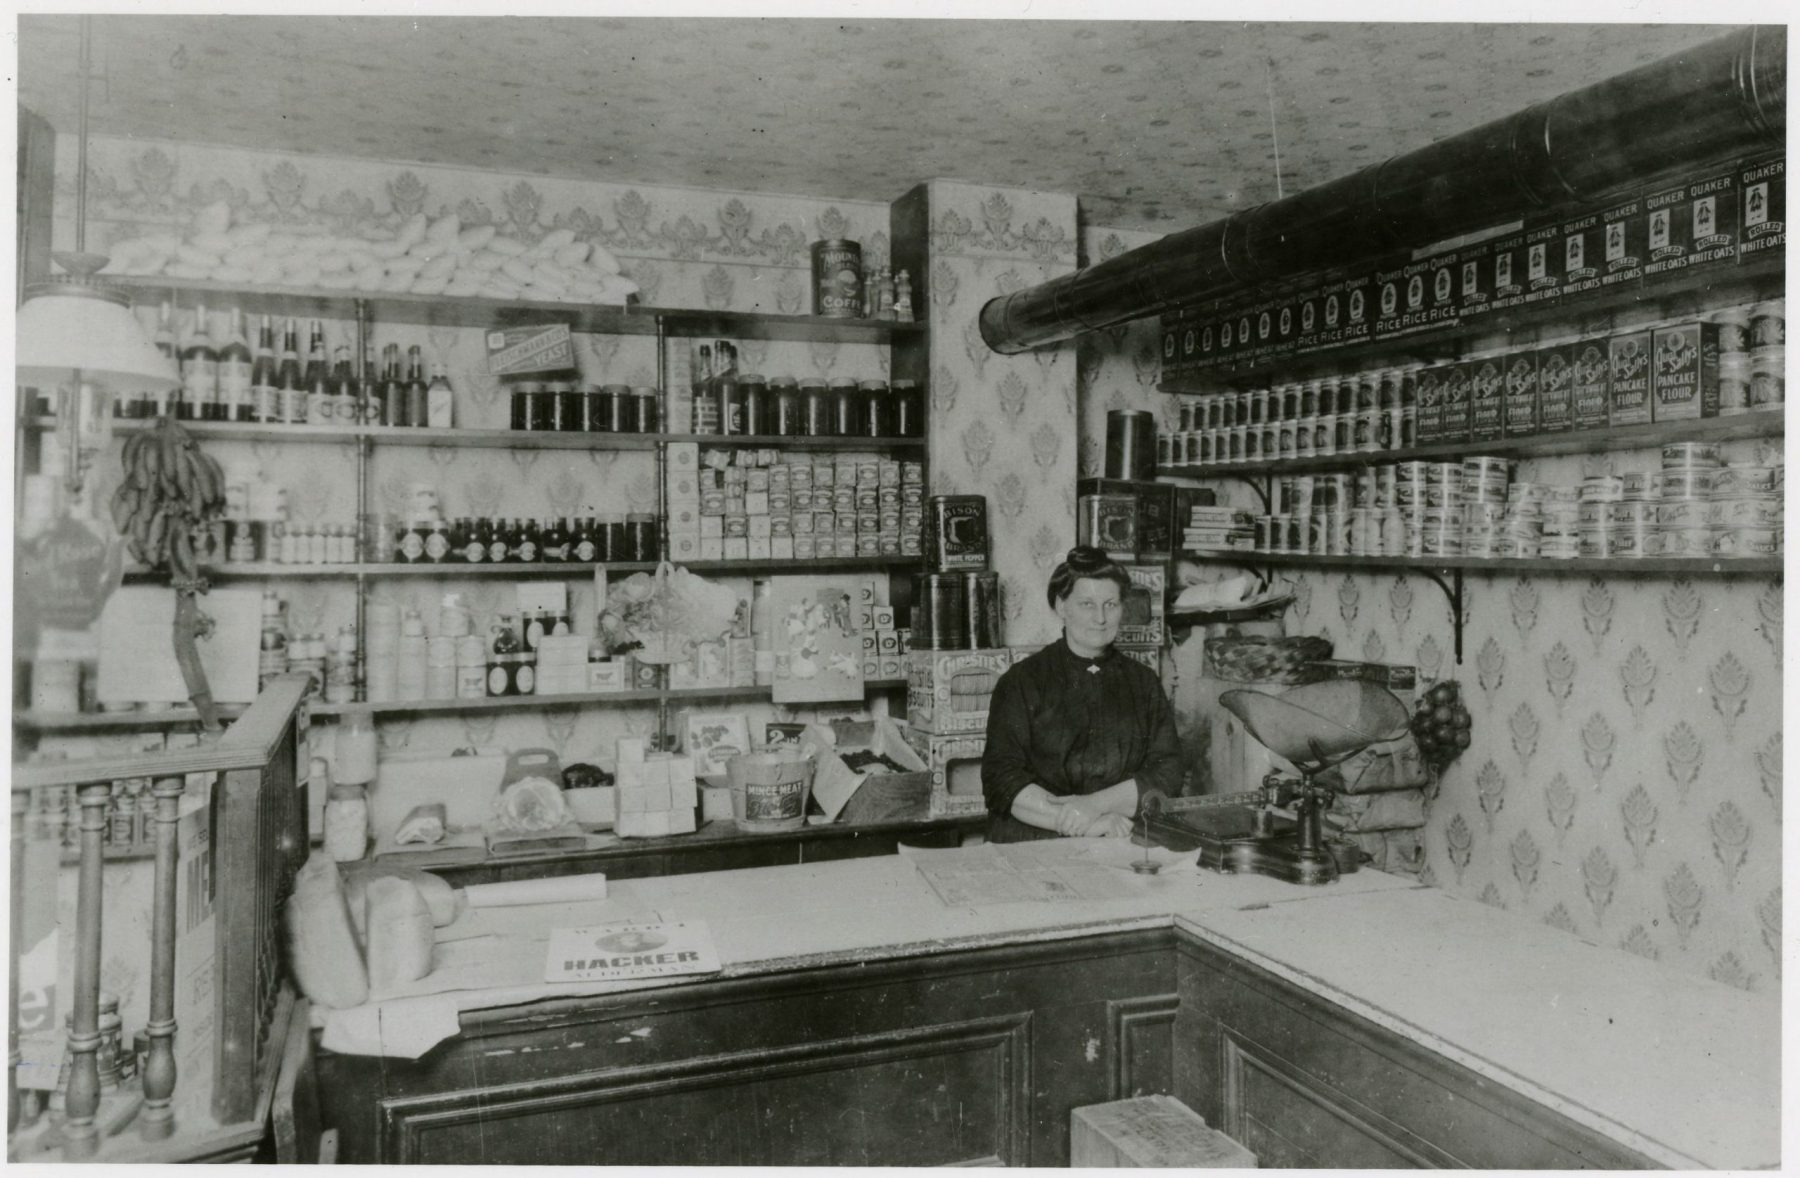 Interior view of Richard's Grocery (Dairy) at Nassau and Lippincott Streets in 1905.   OJA, item 2944.